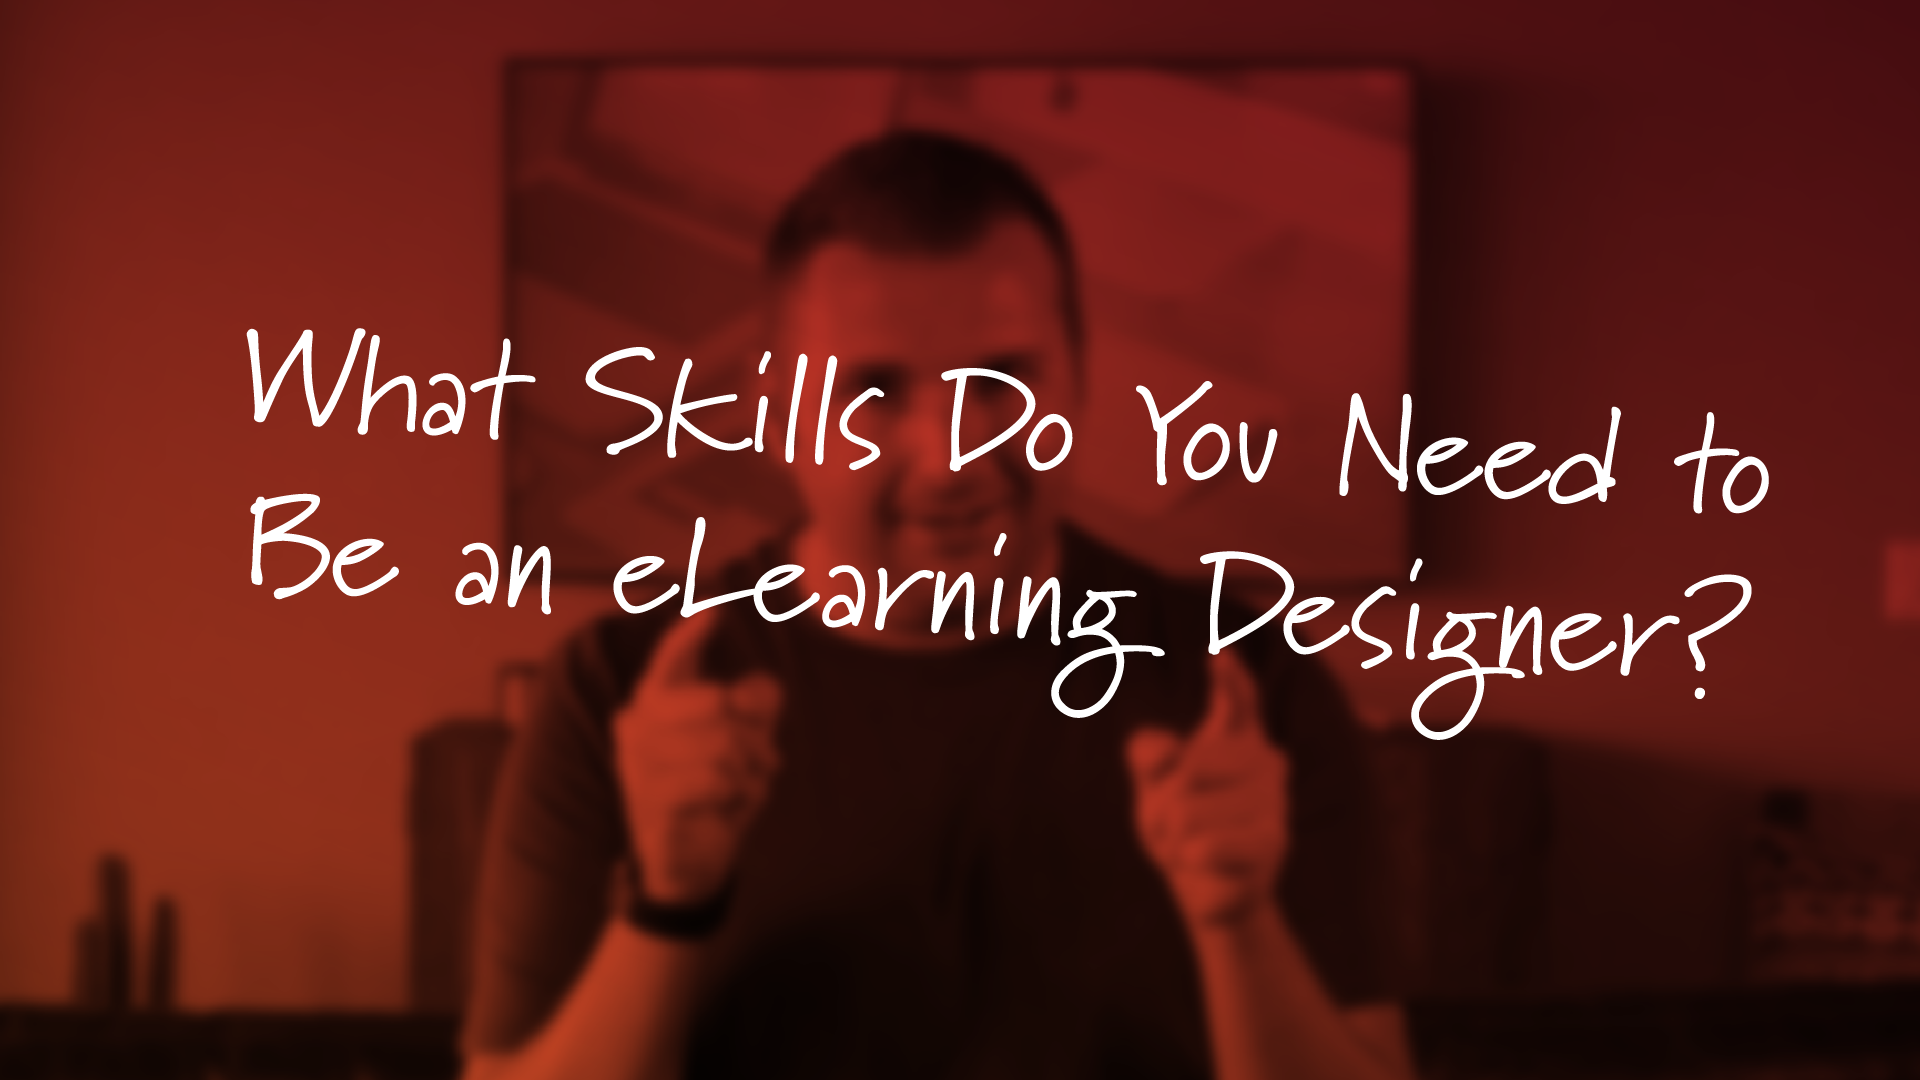 what skills do you need to be an eLearning designer by tim slade